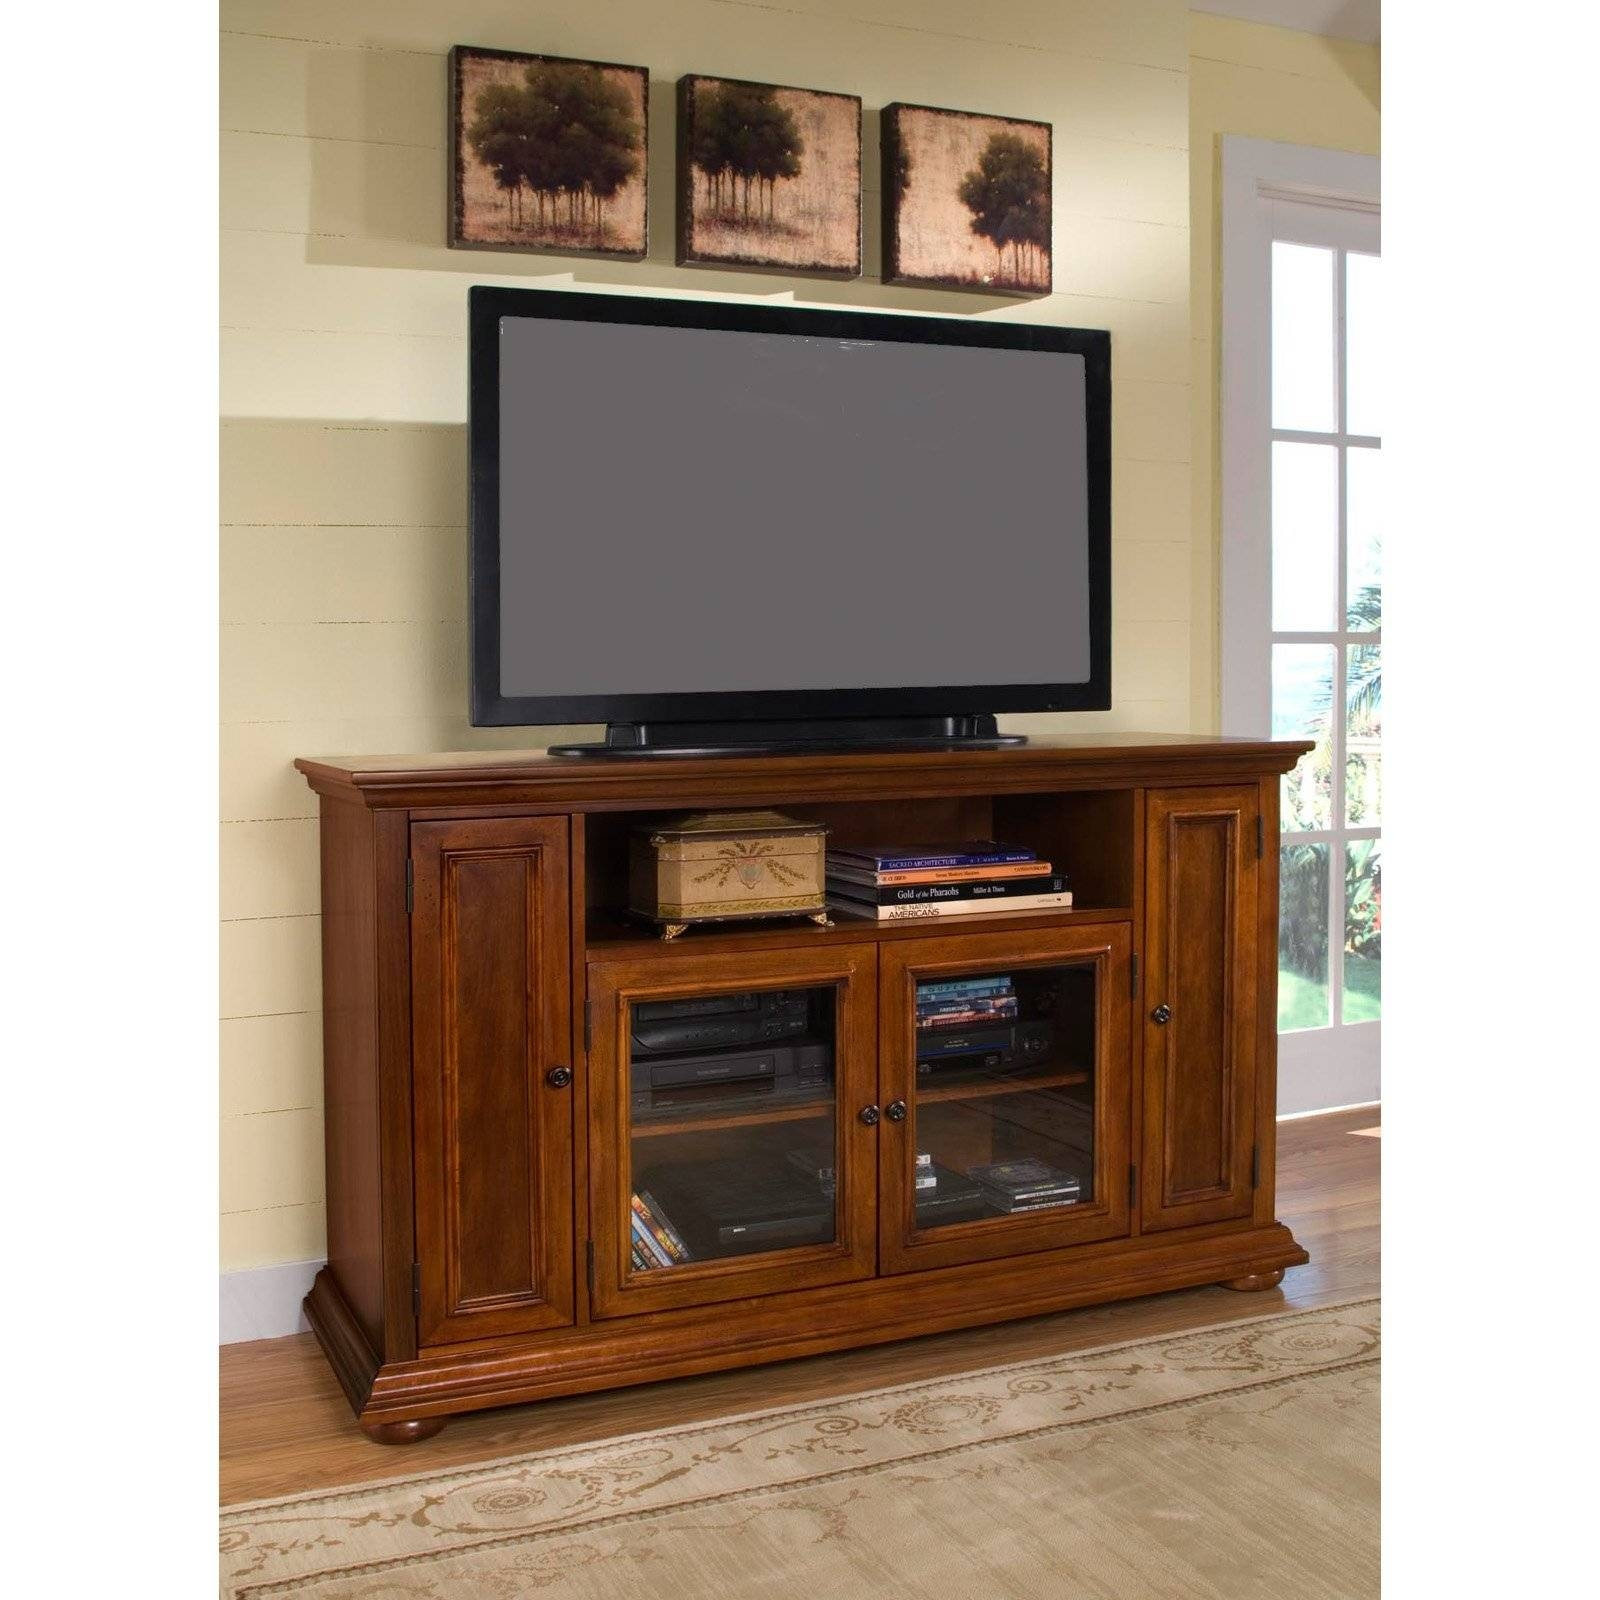 Rectangle Black Flat Screen Tv Over Brown Wooden Cabinet With intended for Cream Tv Cabinets (Image 5 of 15)